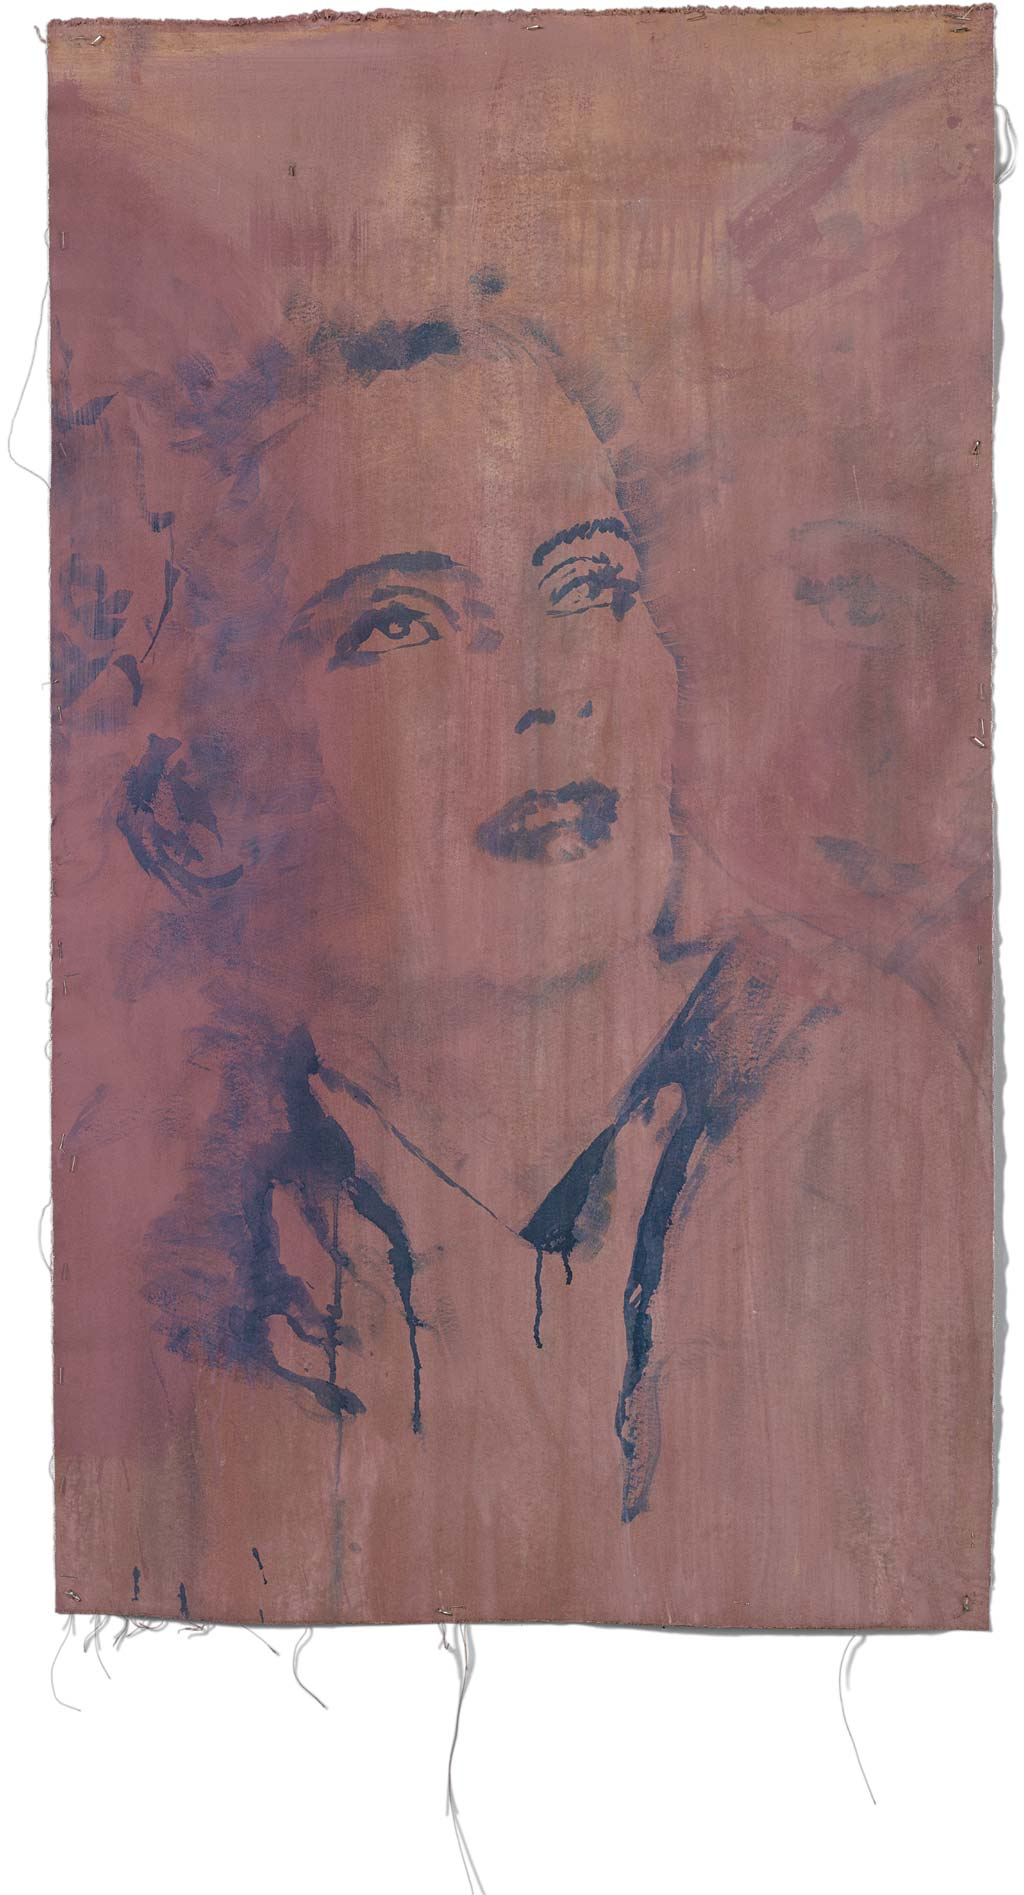 Johnny O'Brady - FRANCES FARMER. acrylic on canvas, 29 X 50 in